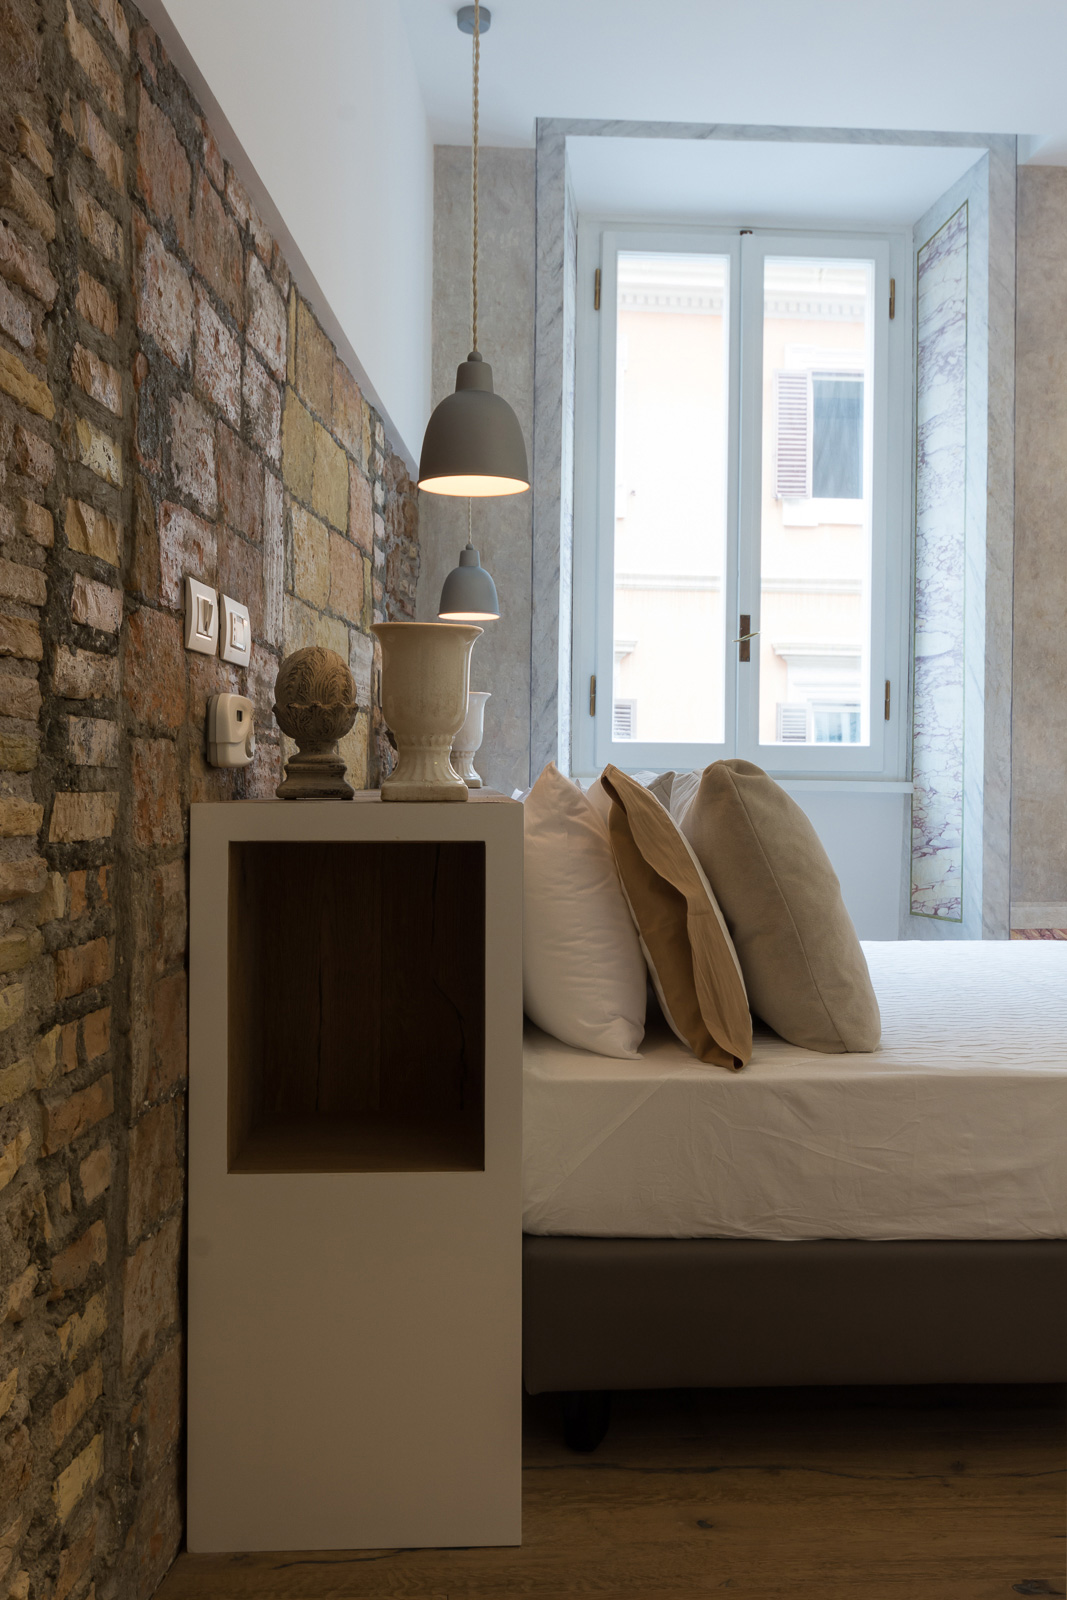 Via Sistina Apartment bedroom headboard and stone wall